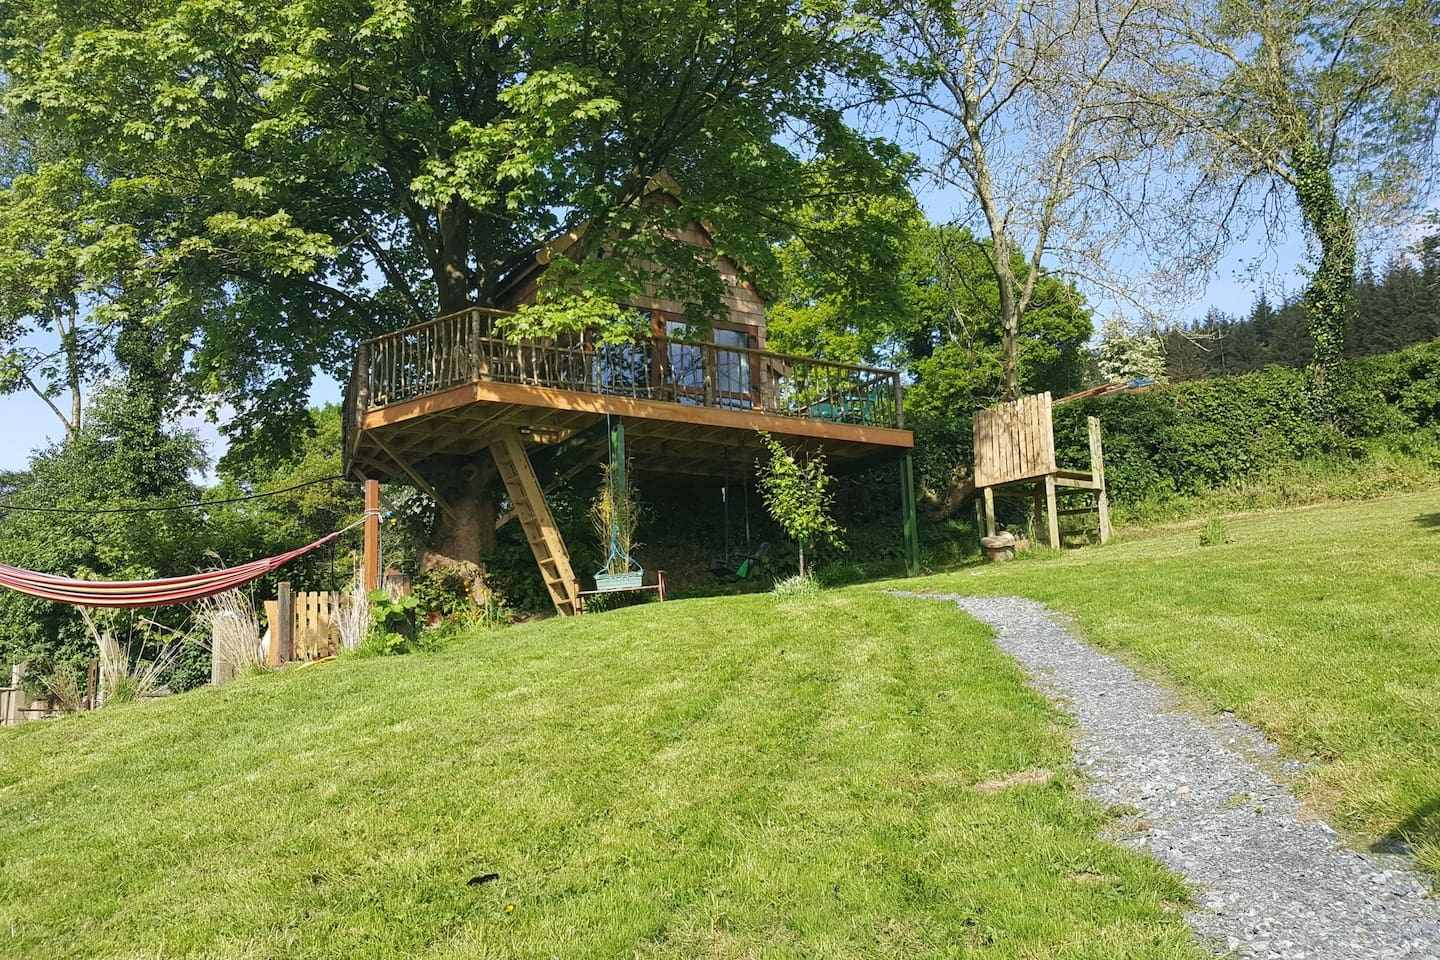 tuckmill-treehouse-with-hammock-at-top-of-green-field